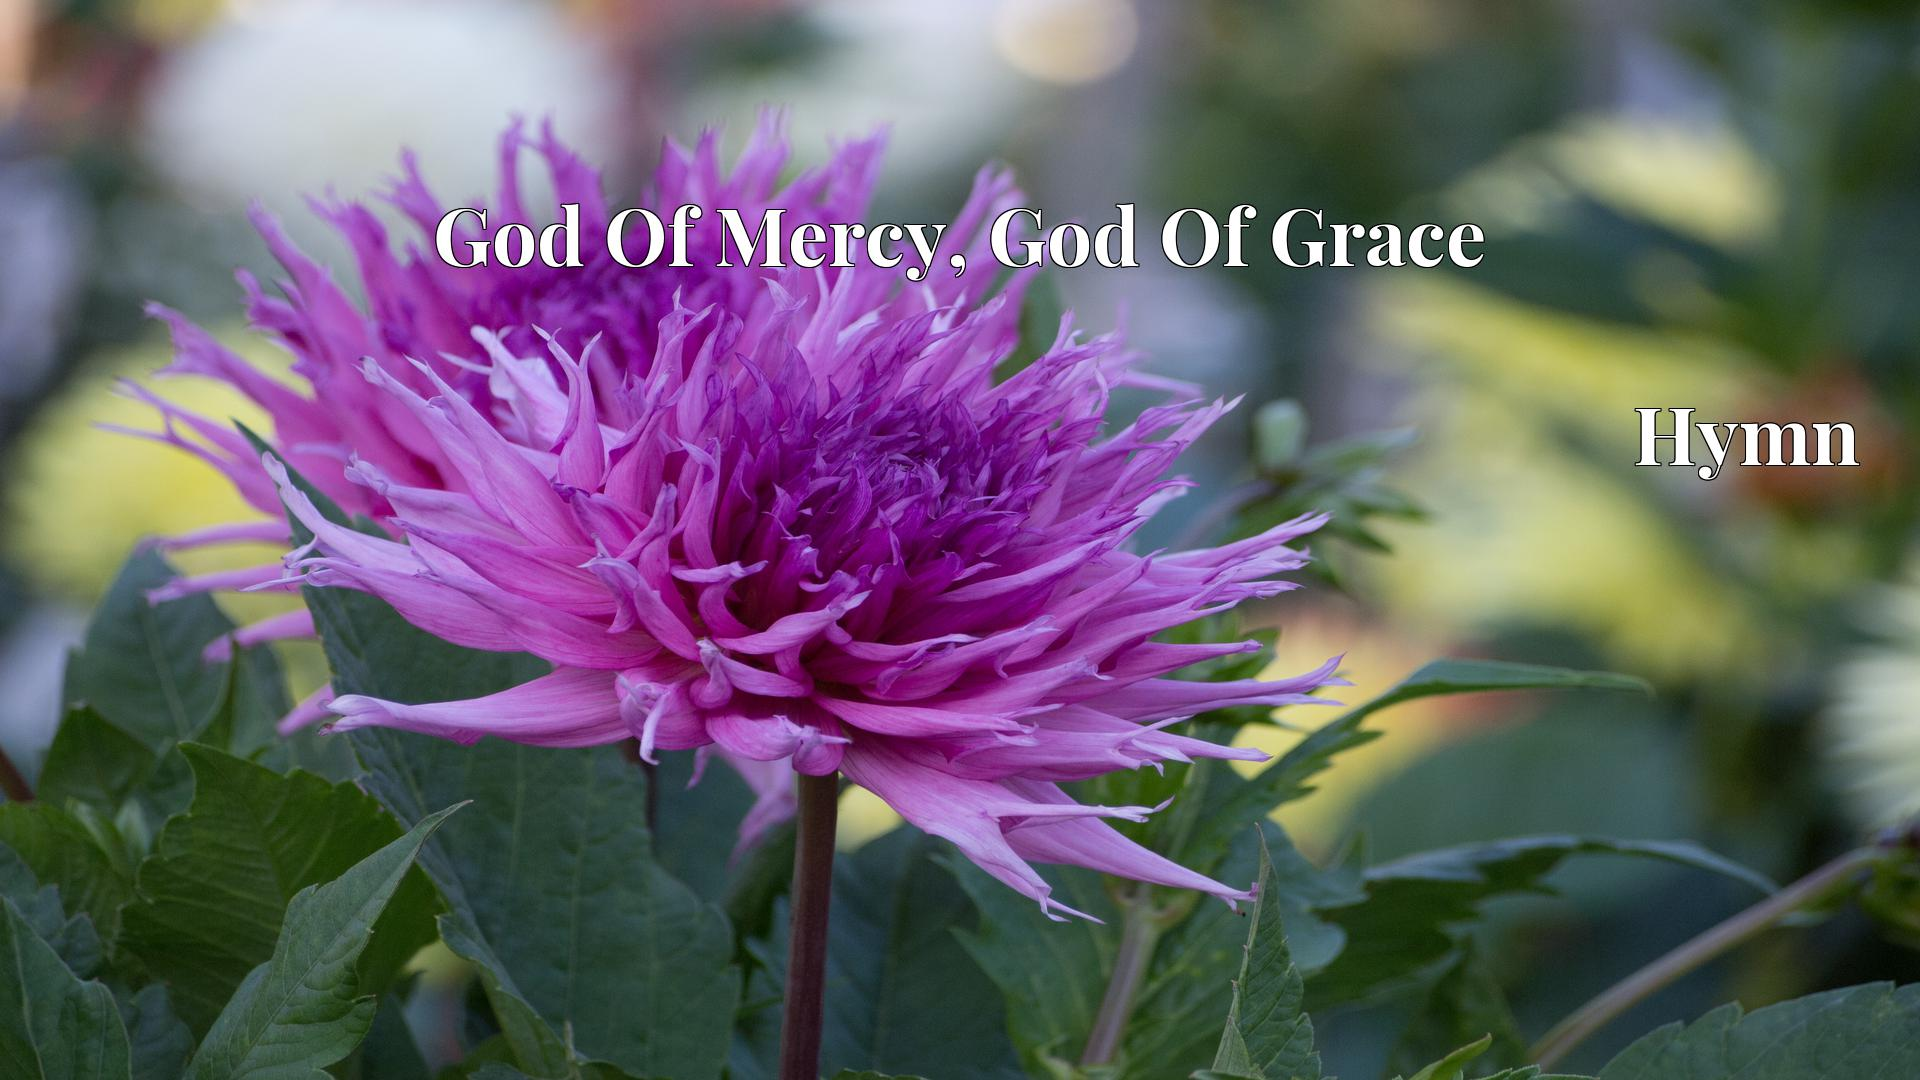 God Of Mercy, God Of Grace - Hymn